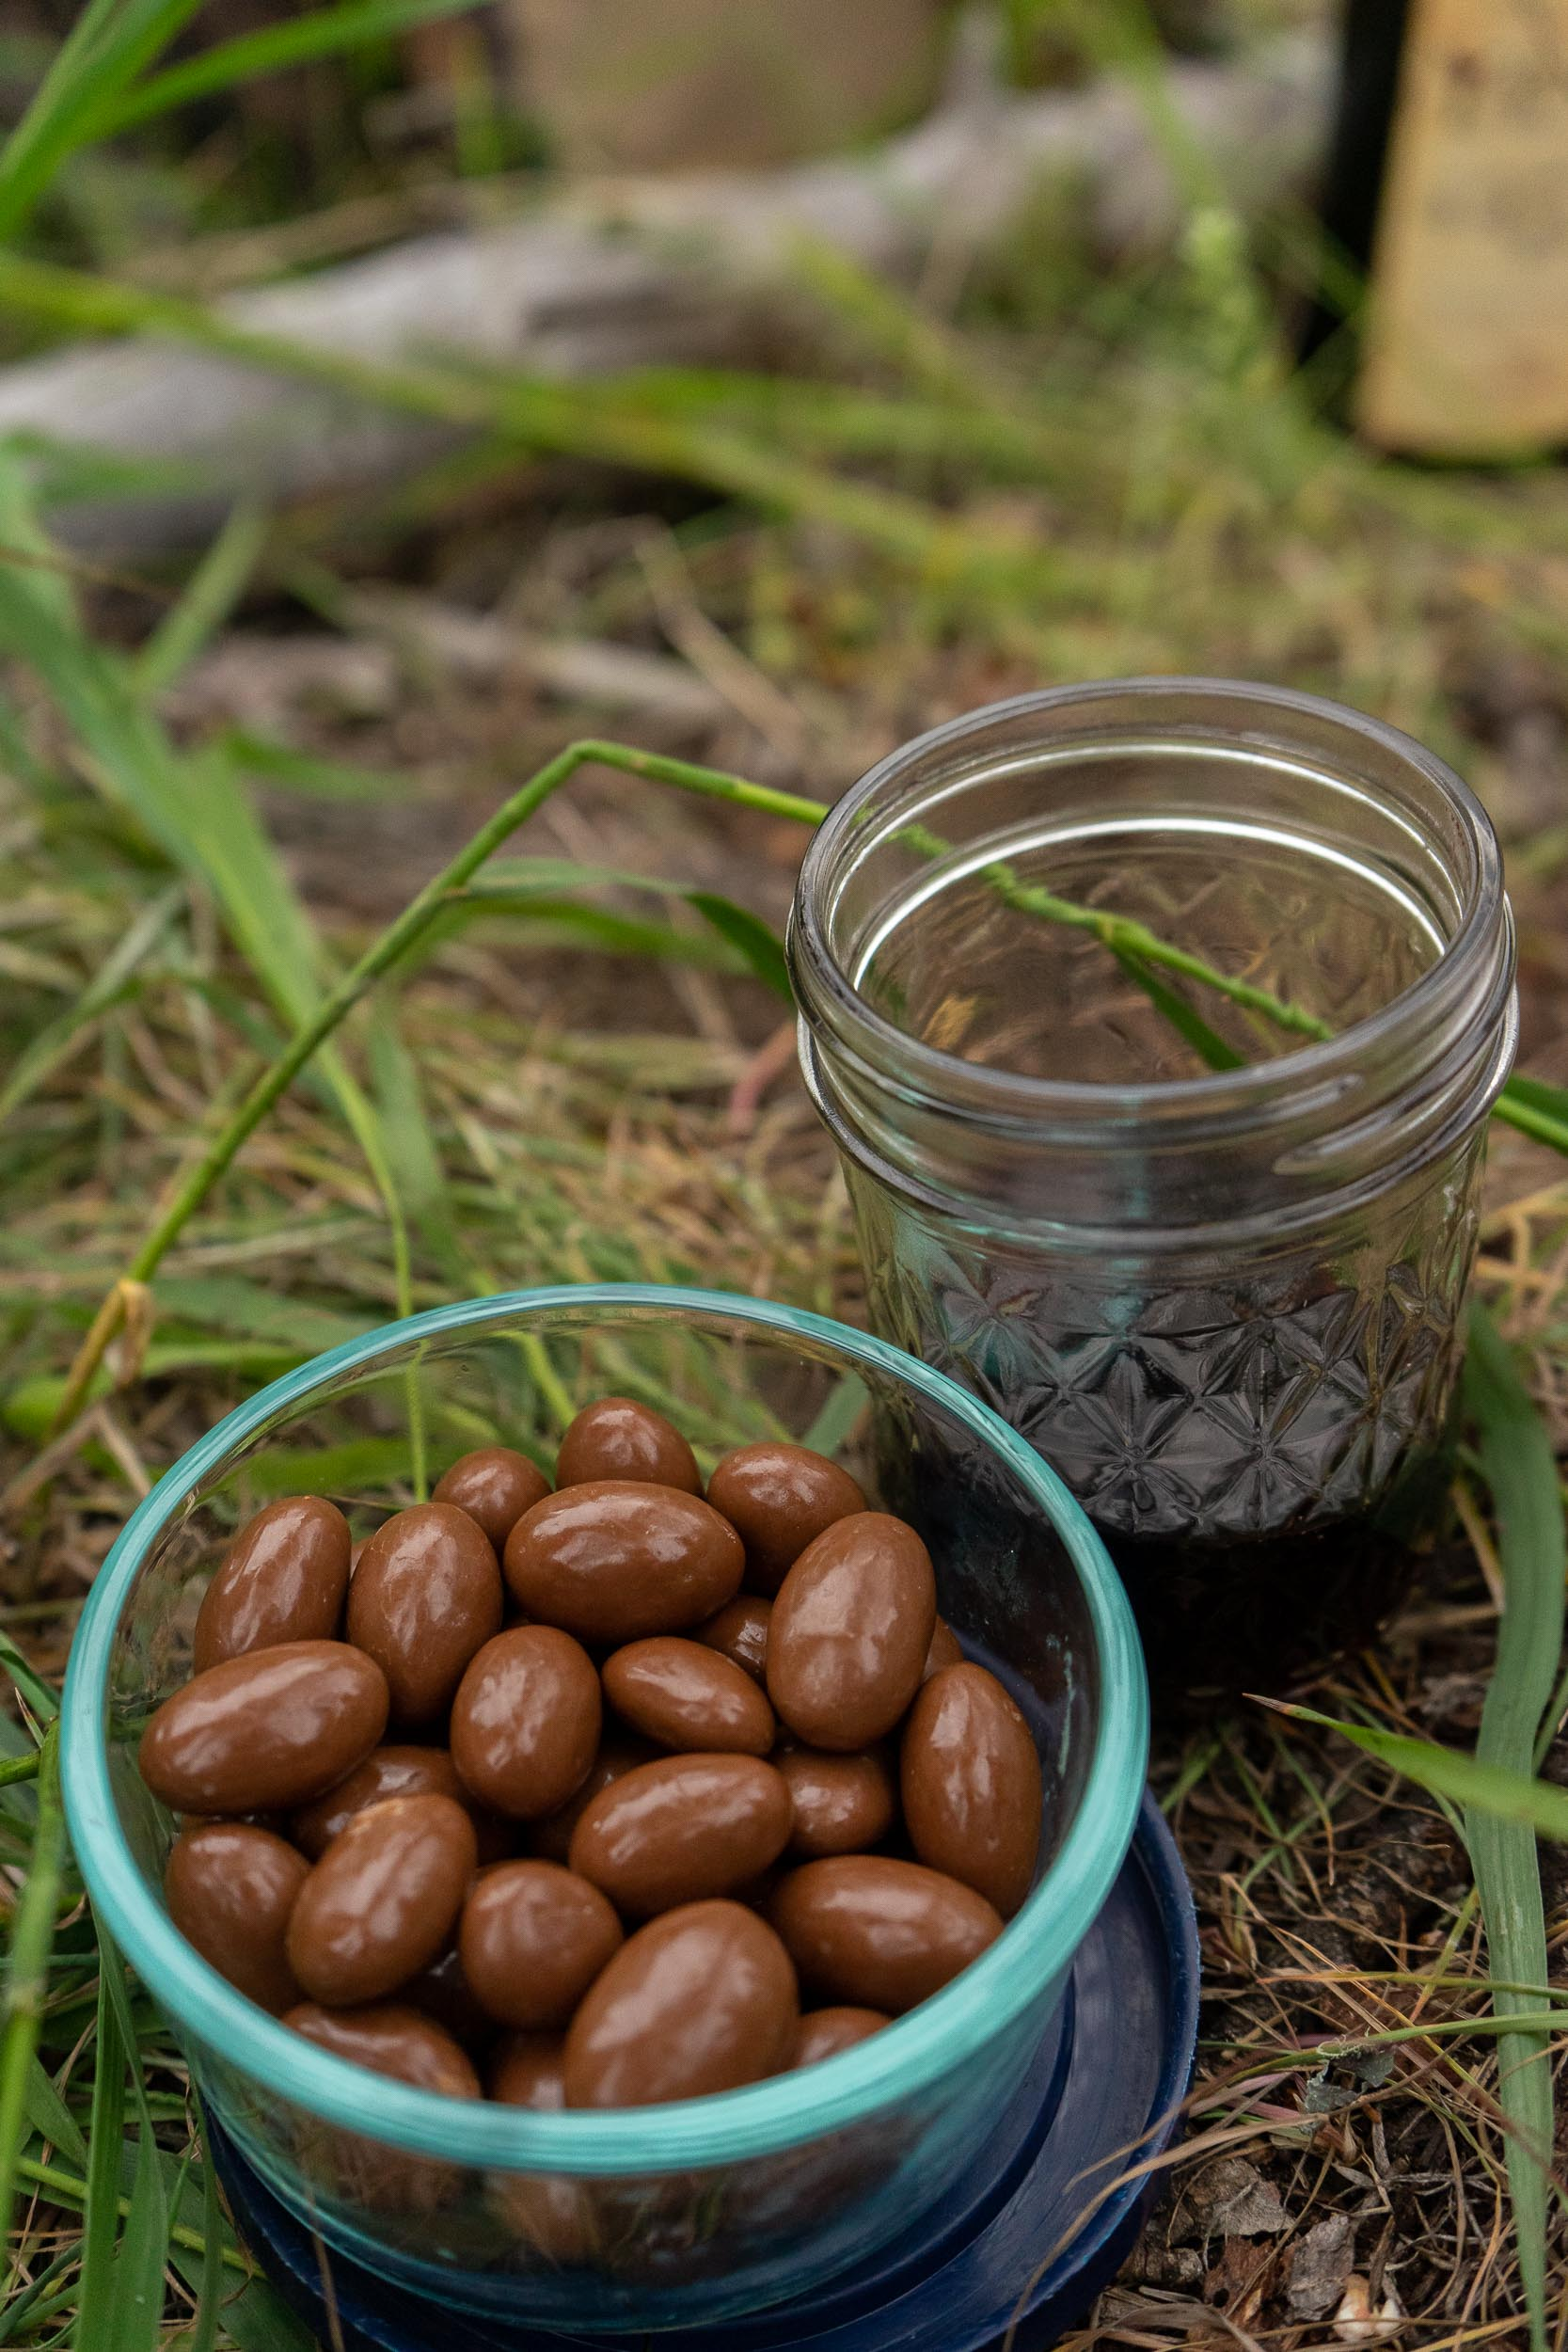 Quick, easy and affordable ideas for zero waste camping!